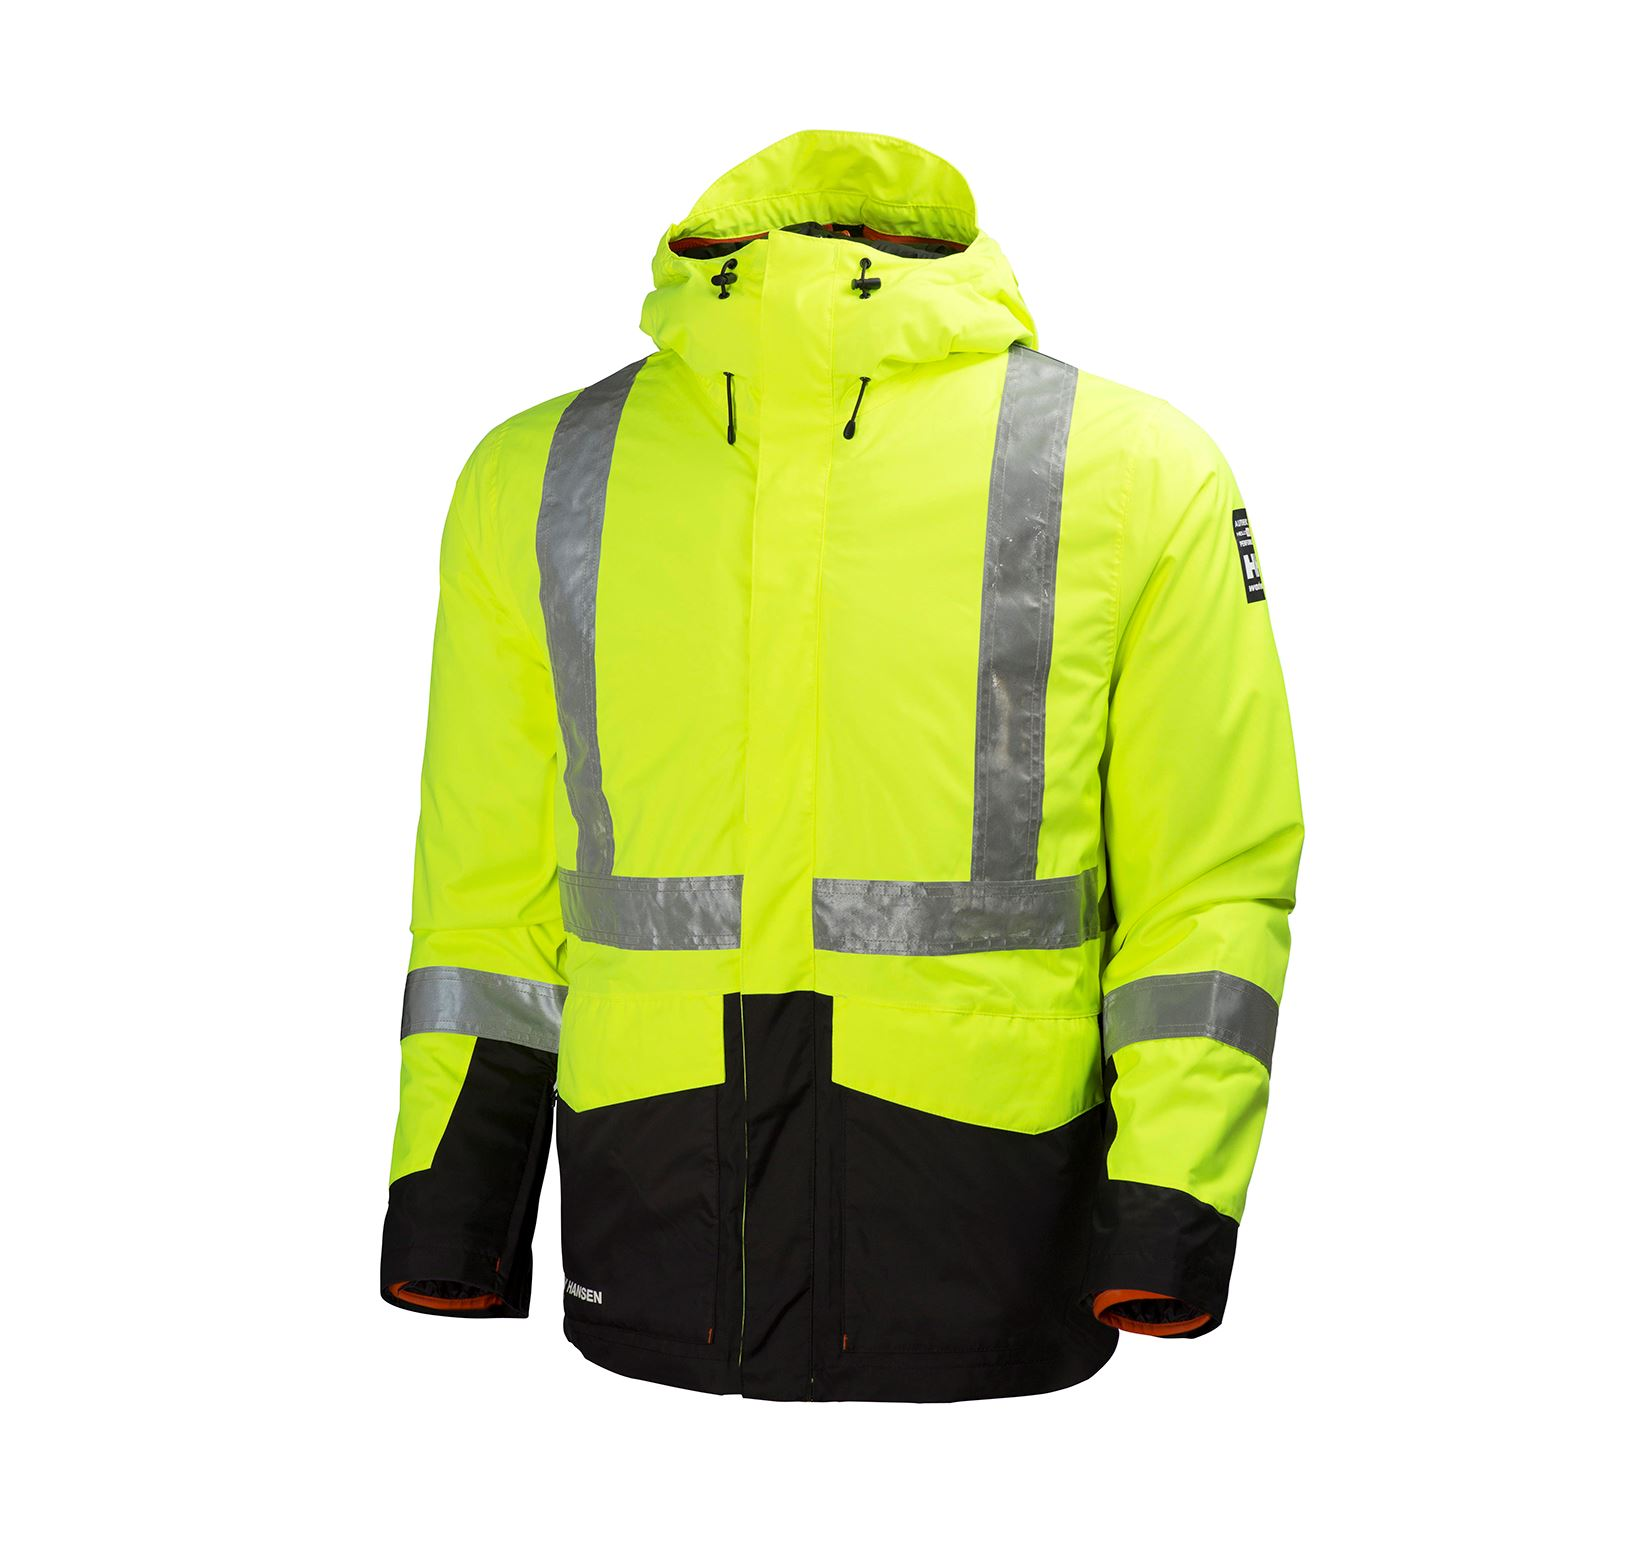 helly hansen workwear oslo h2 flow cis jacket fri frakt hos l nna sport. Black Bedroom Furniture Sets. Home Design Ideas